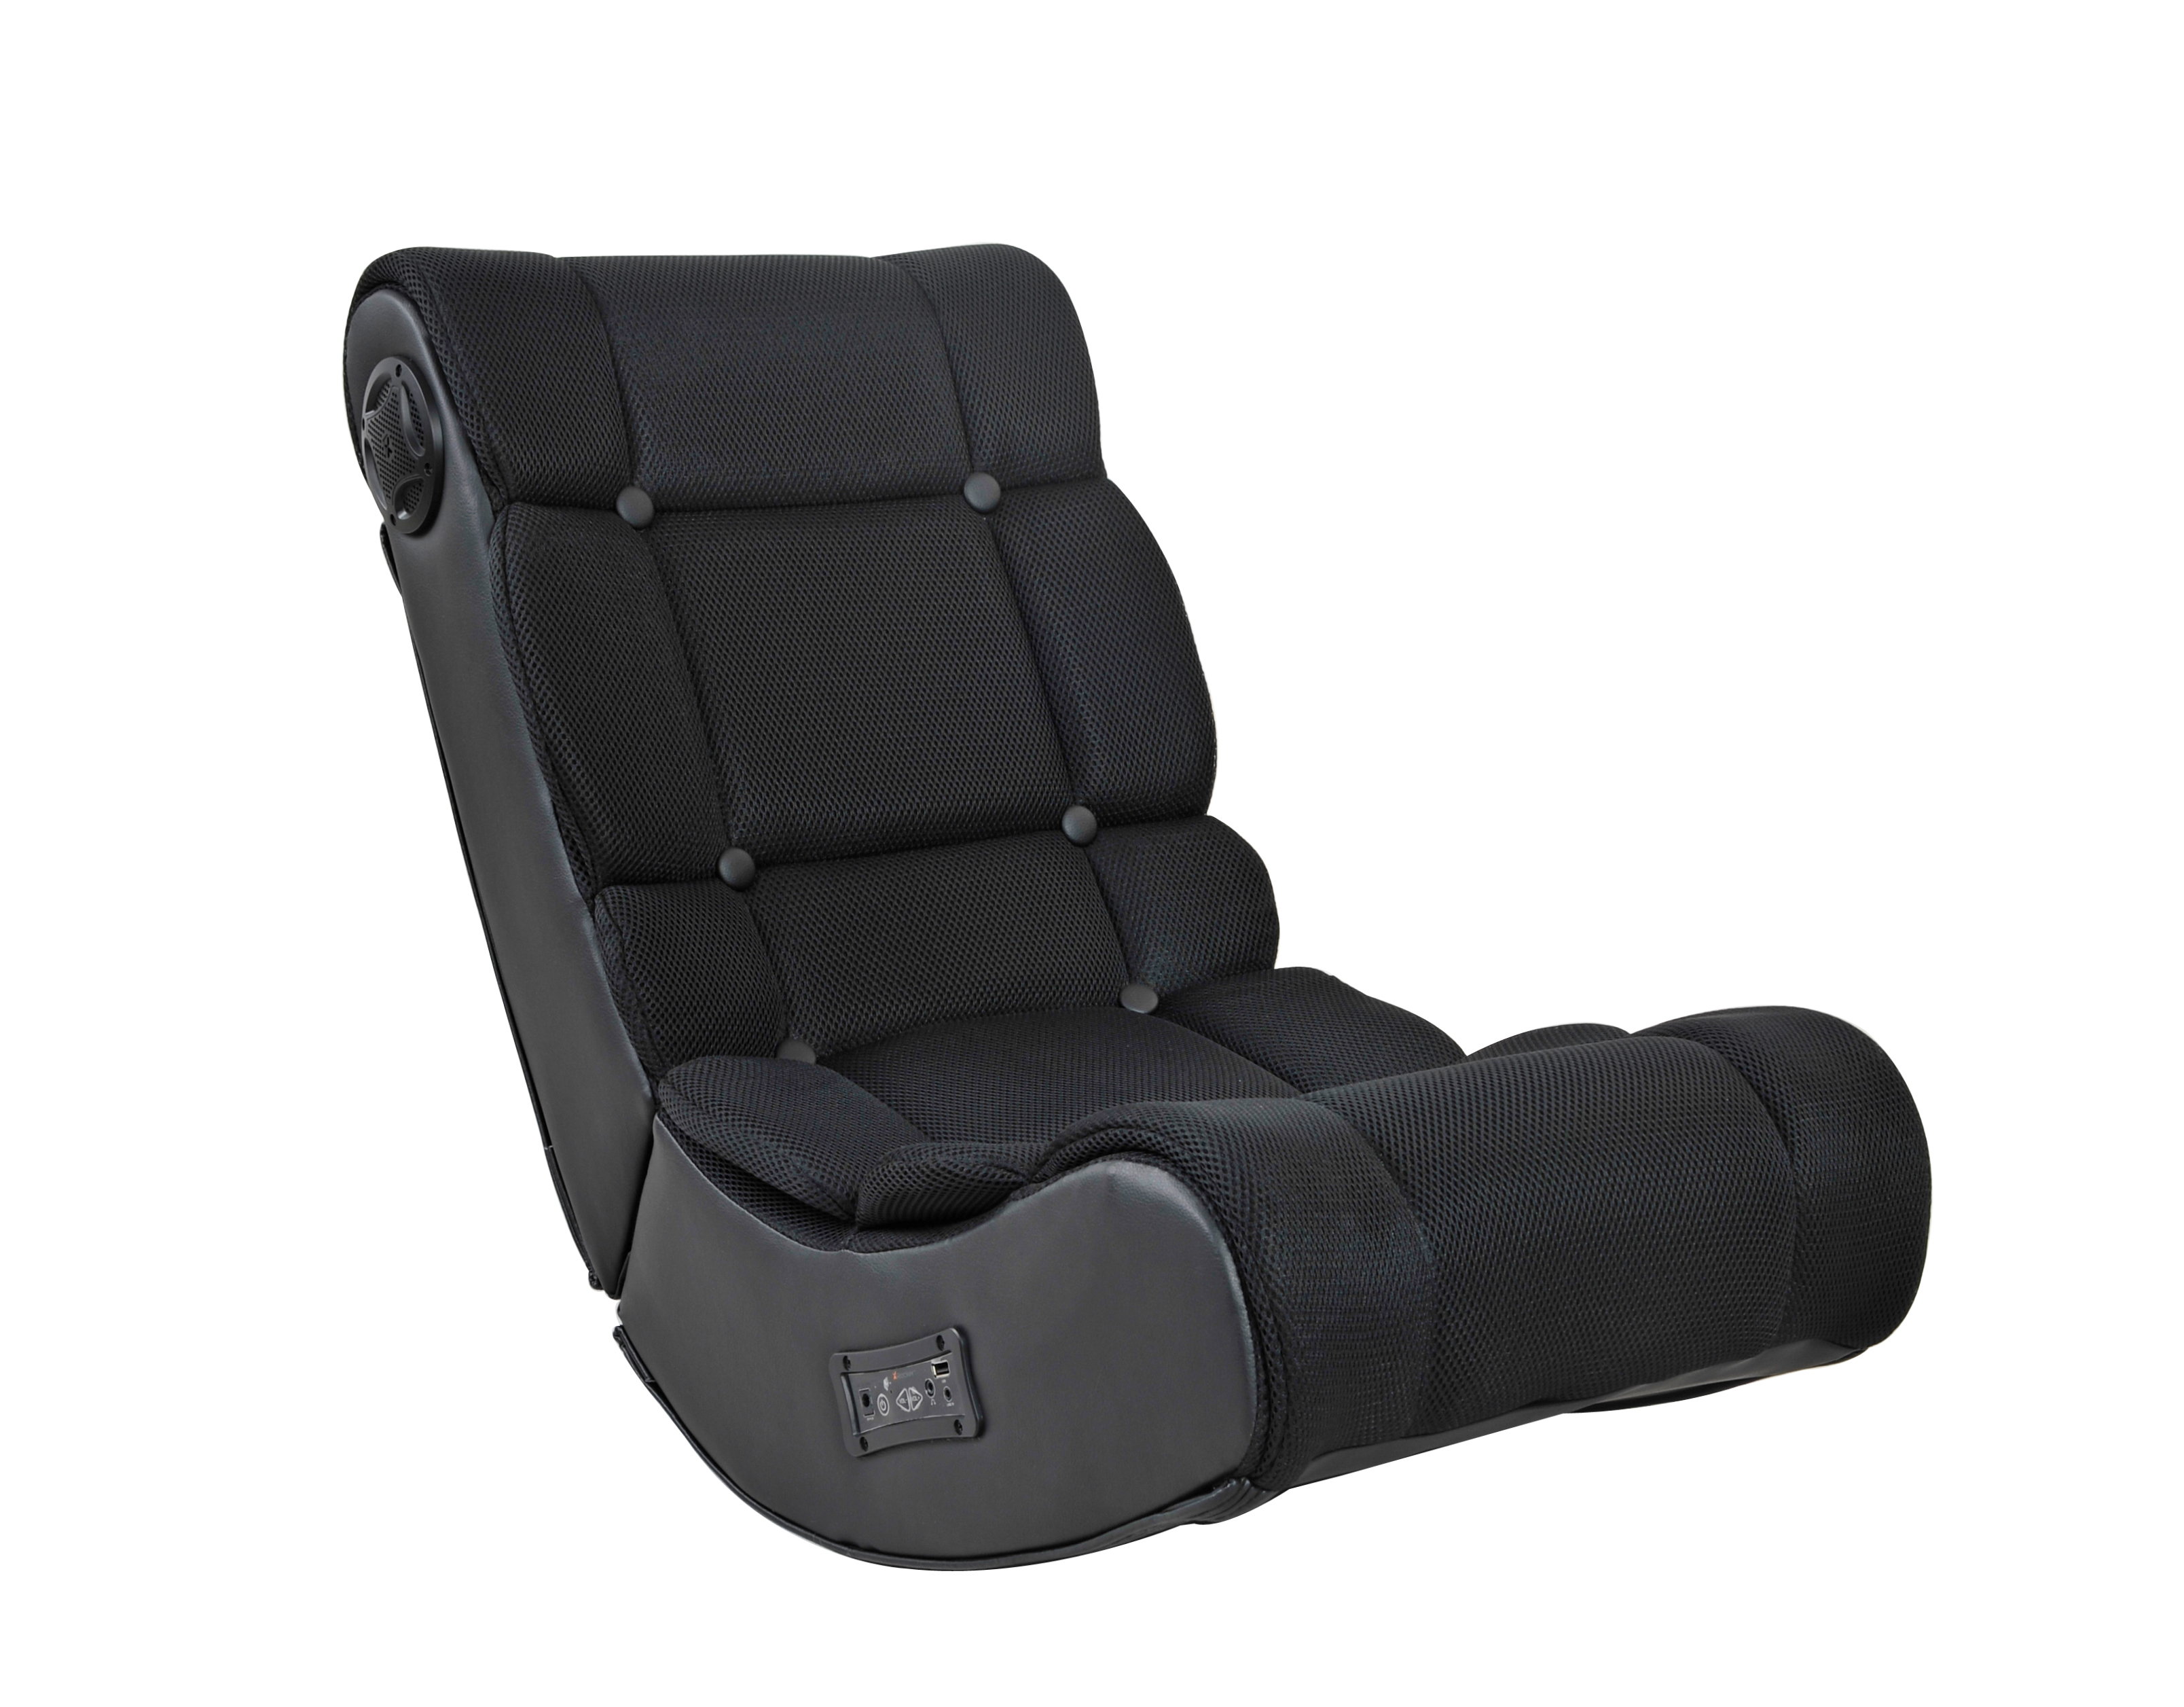 Gaming Chair With Speakers Gaming Chair With Speakers Rocker Subwoofer Bluetooth